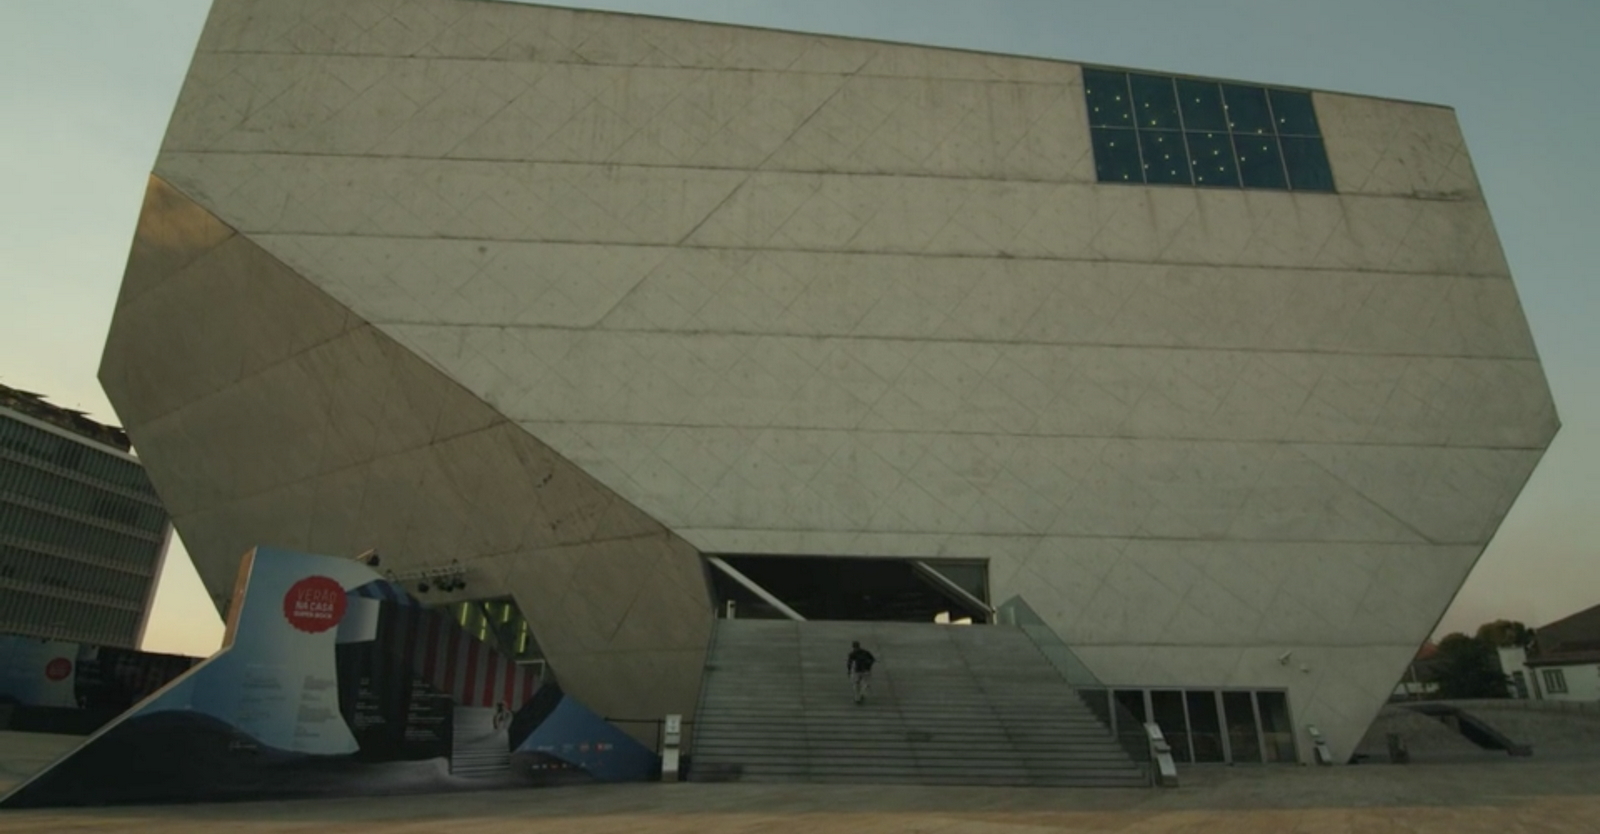 Documentary for Architects REM Rem Koolhaas Documentary-2016 - Sheet2